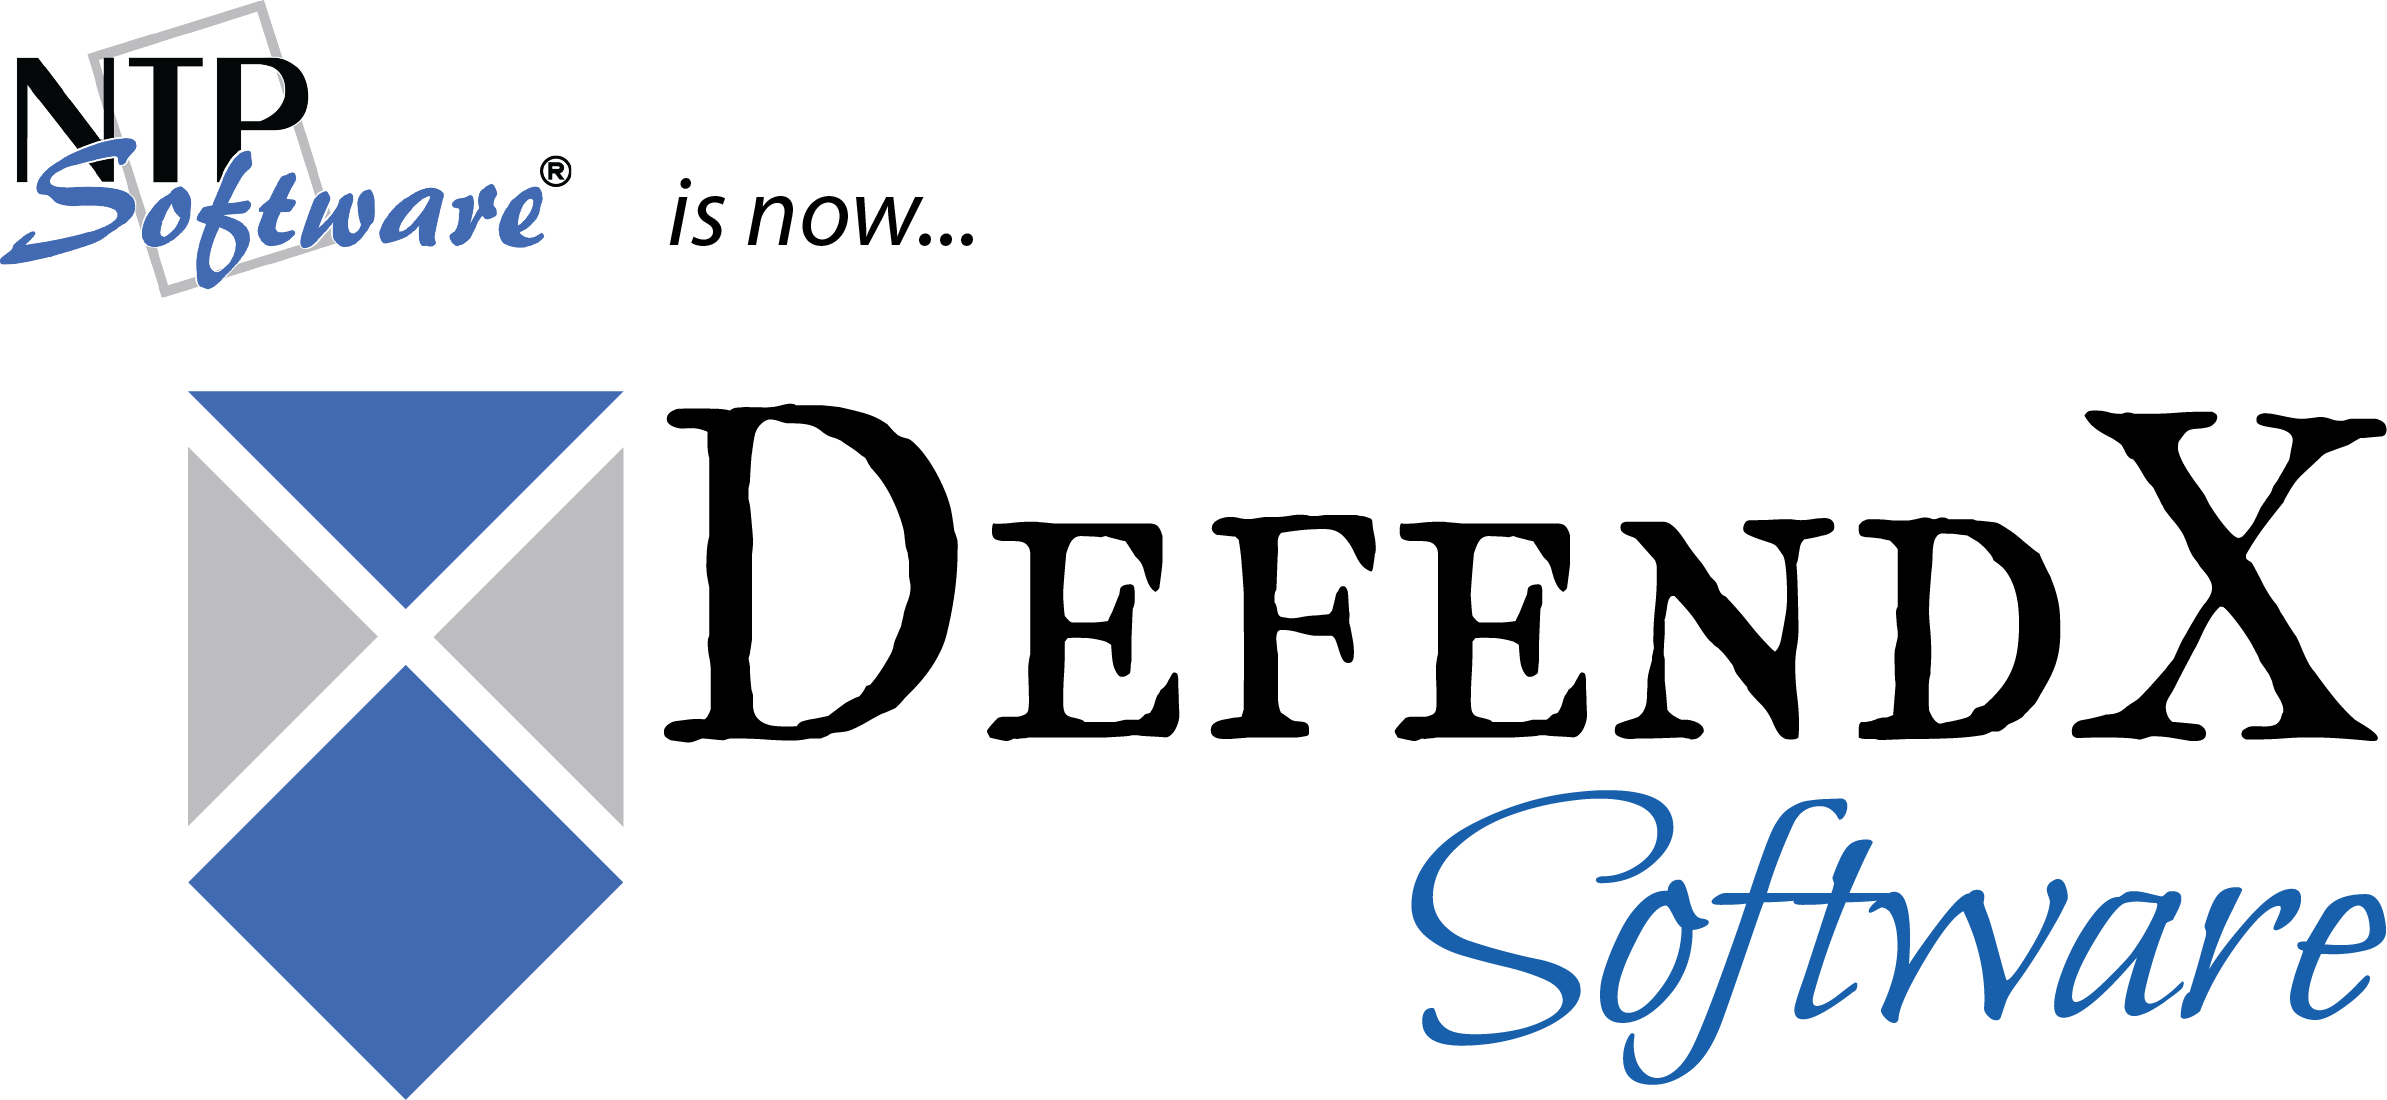 NTP Software is now DefendX Software!